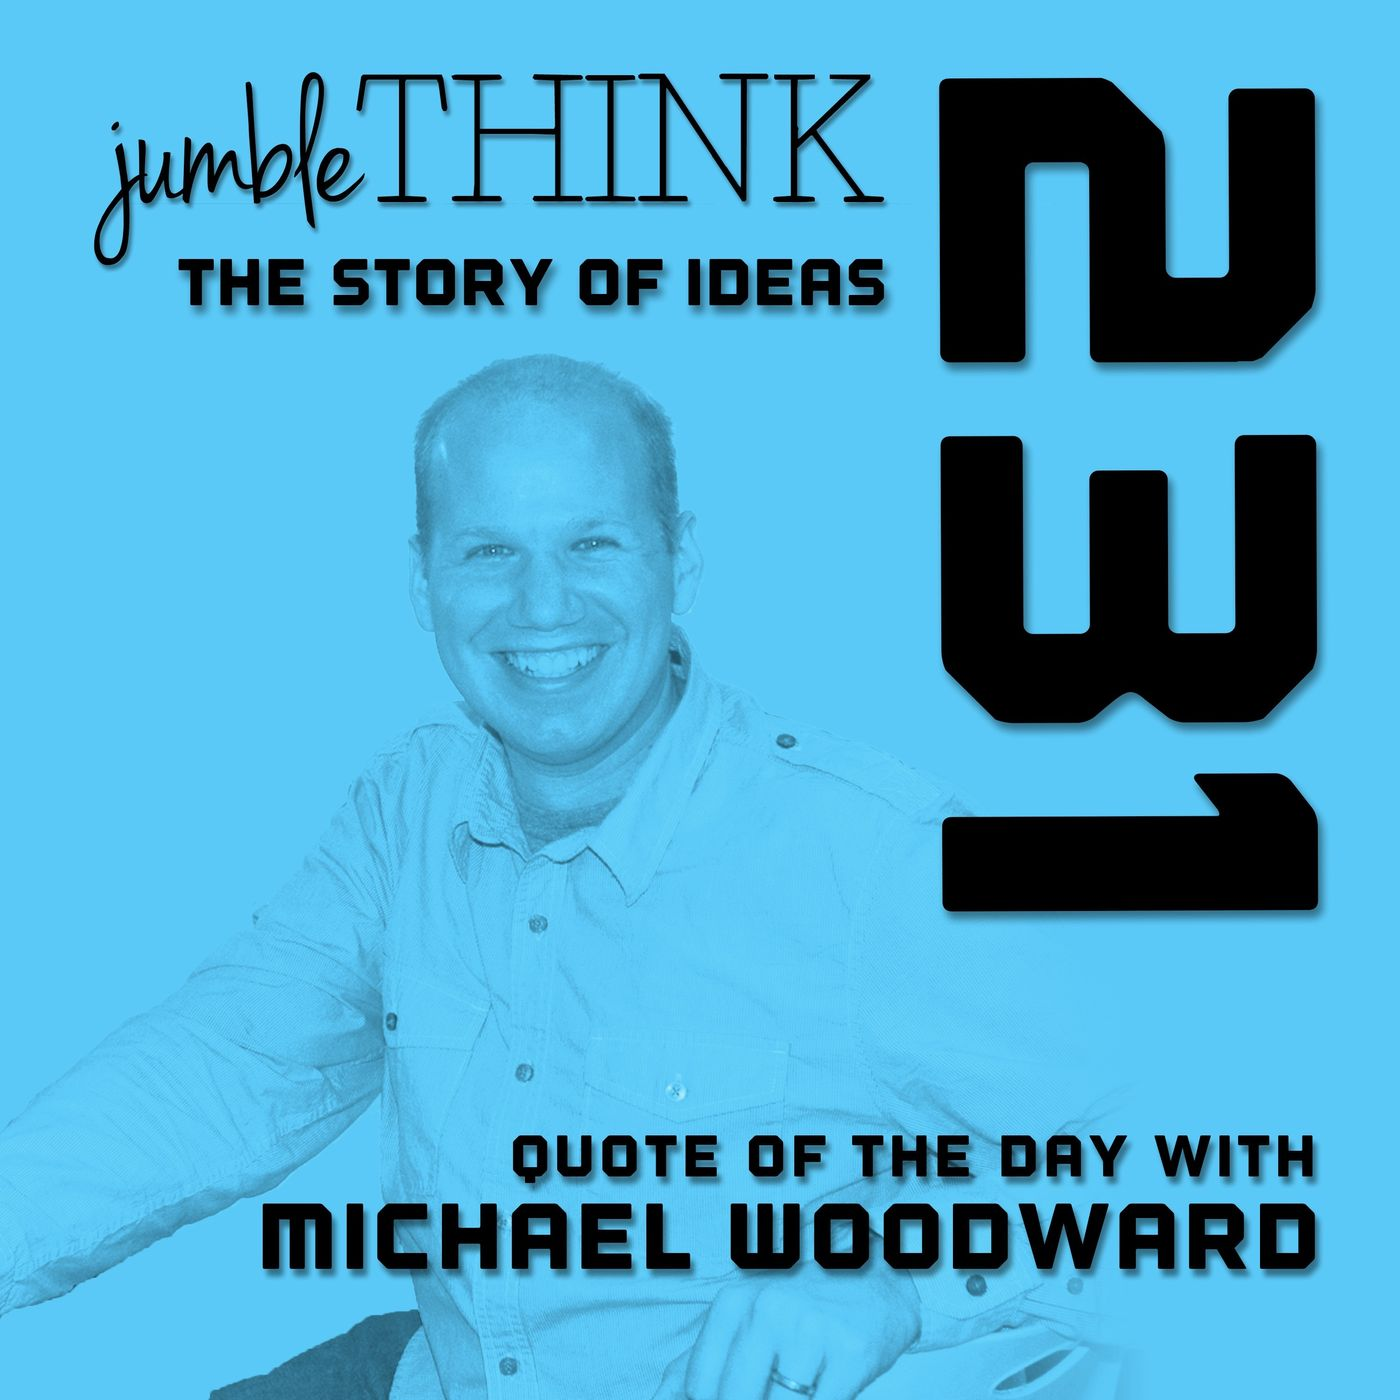 Quote of the Day with Michael Woodward